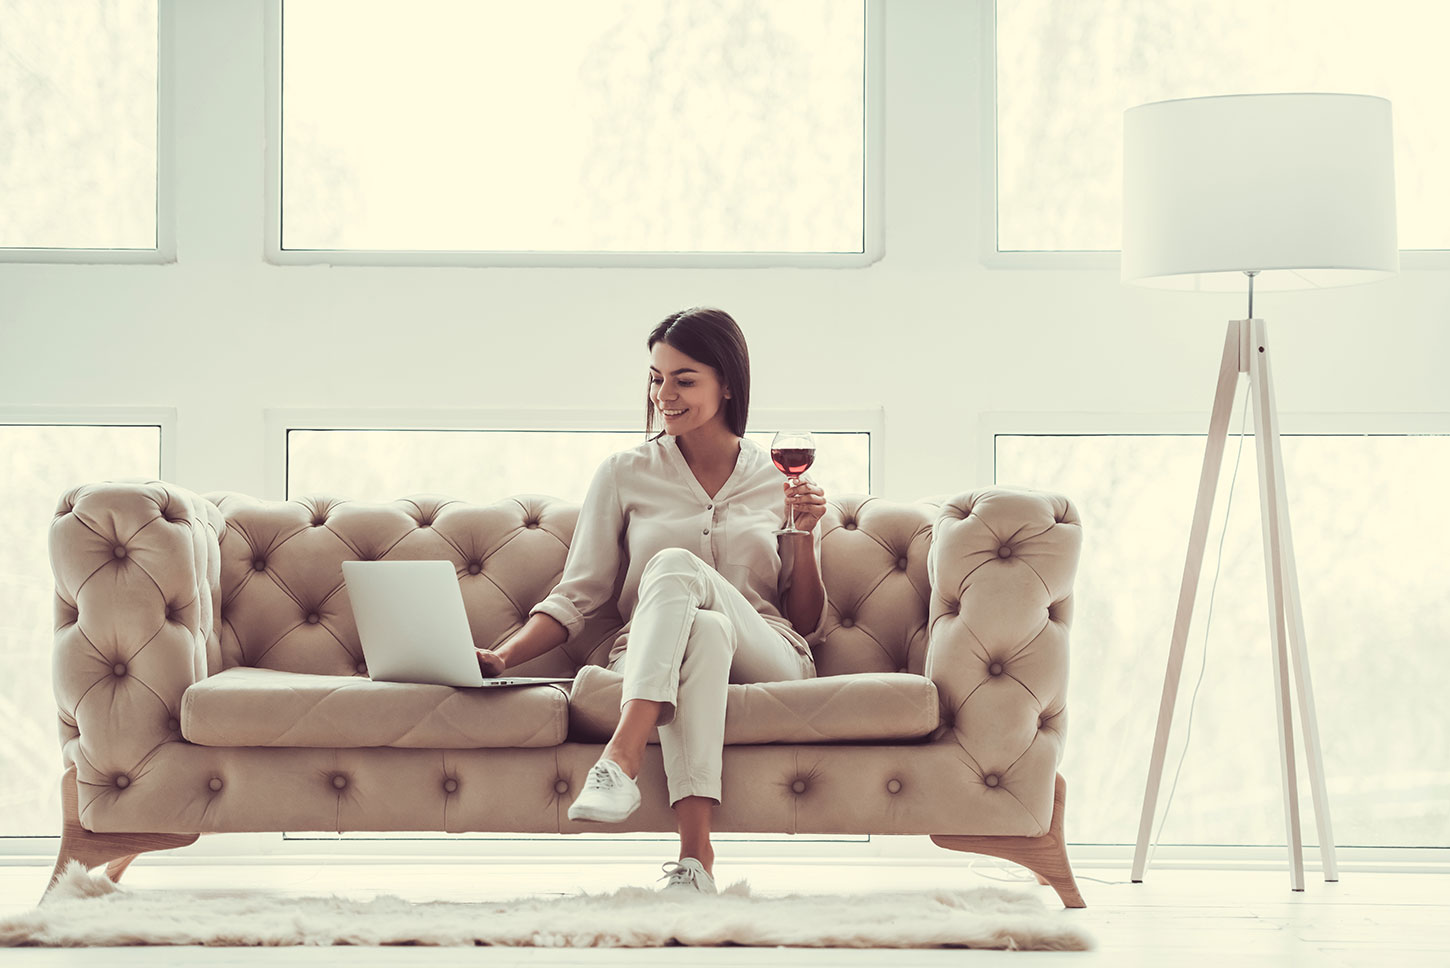 Woman drinking red wine on couch.